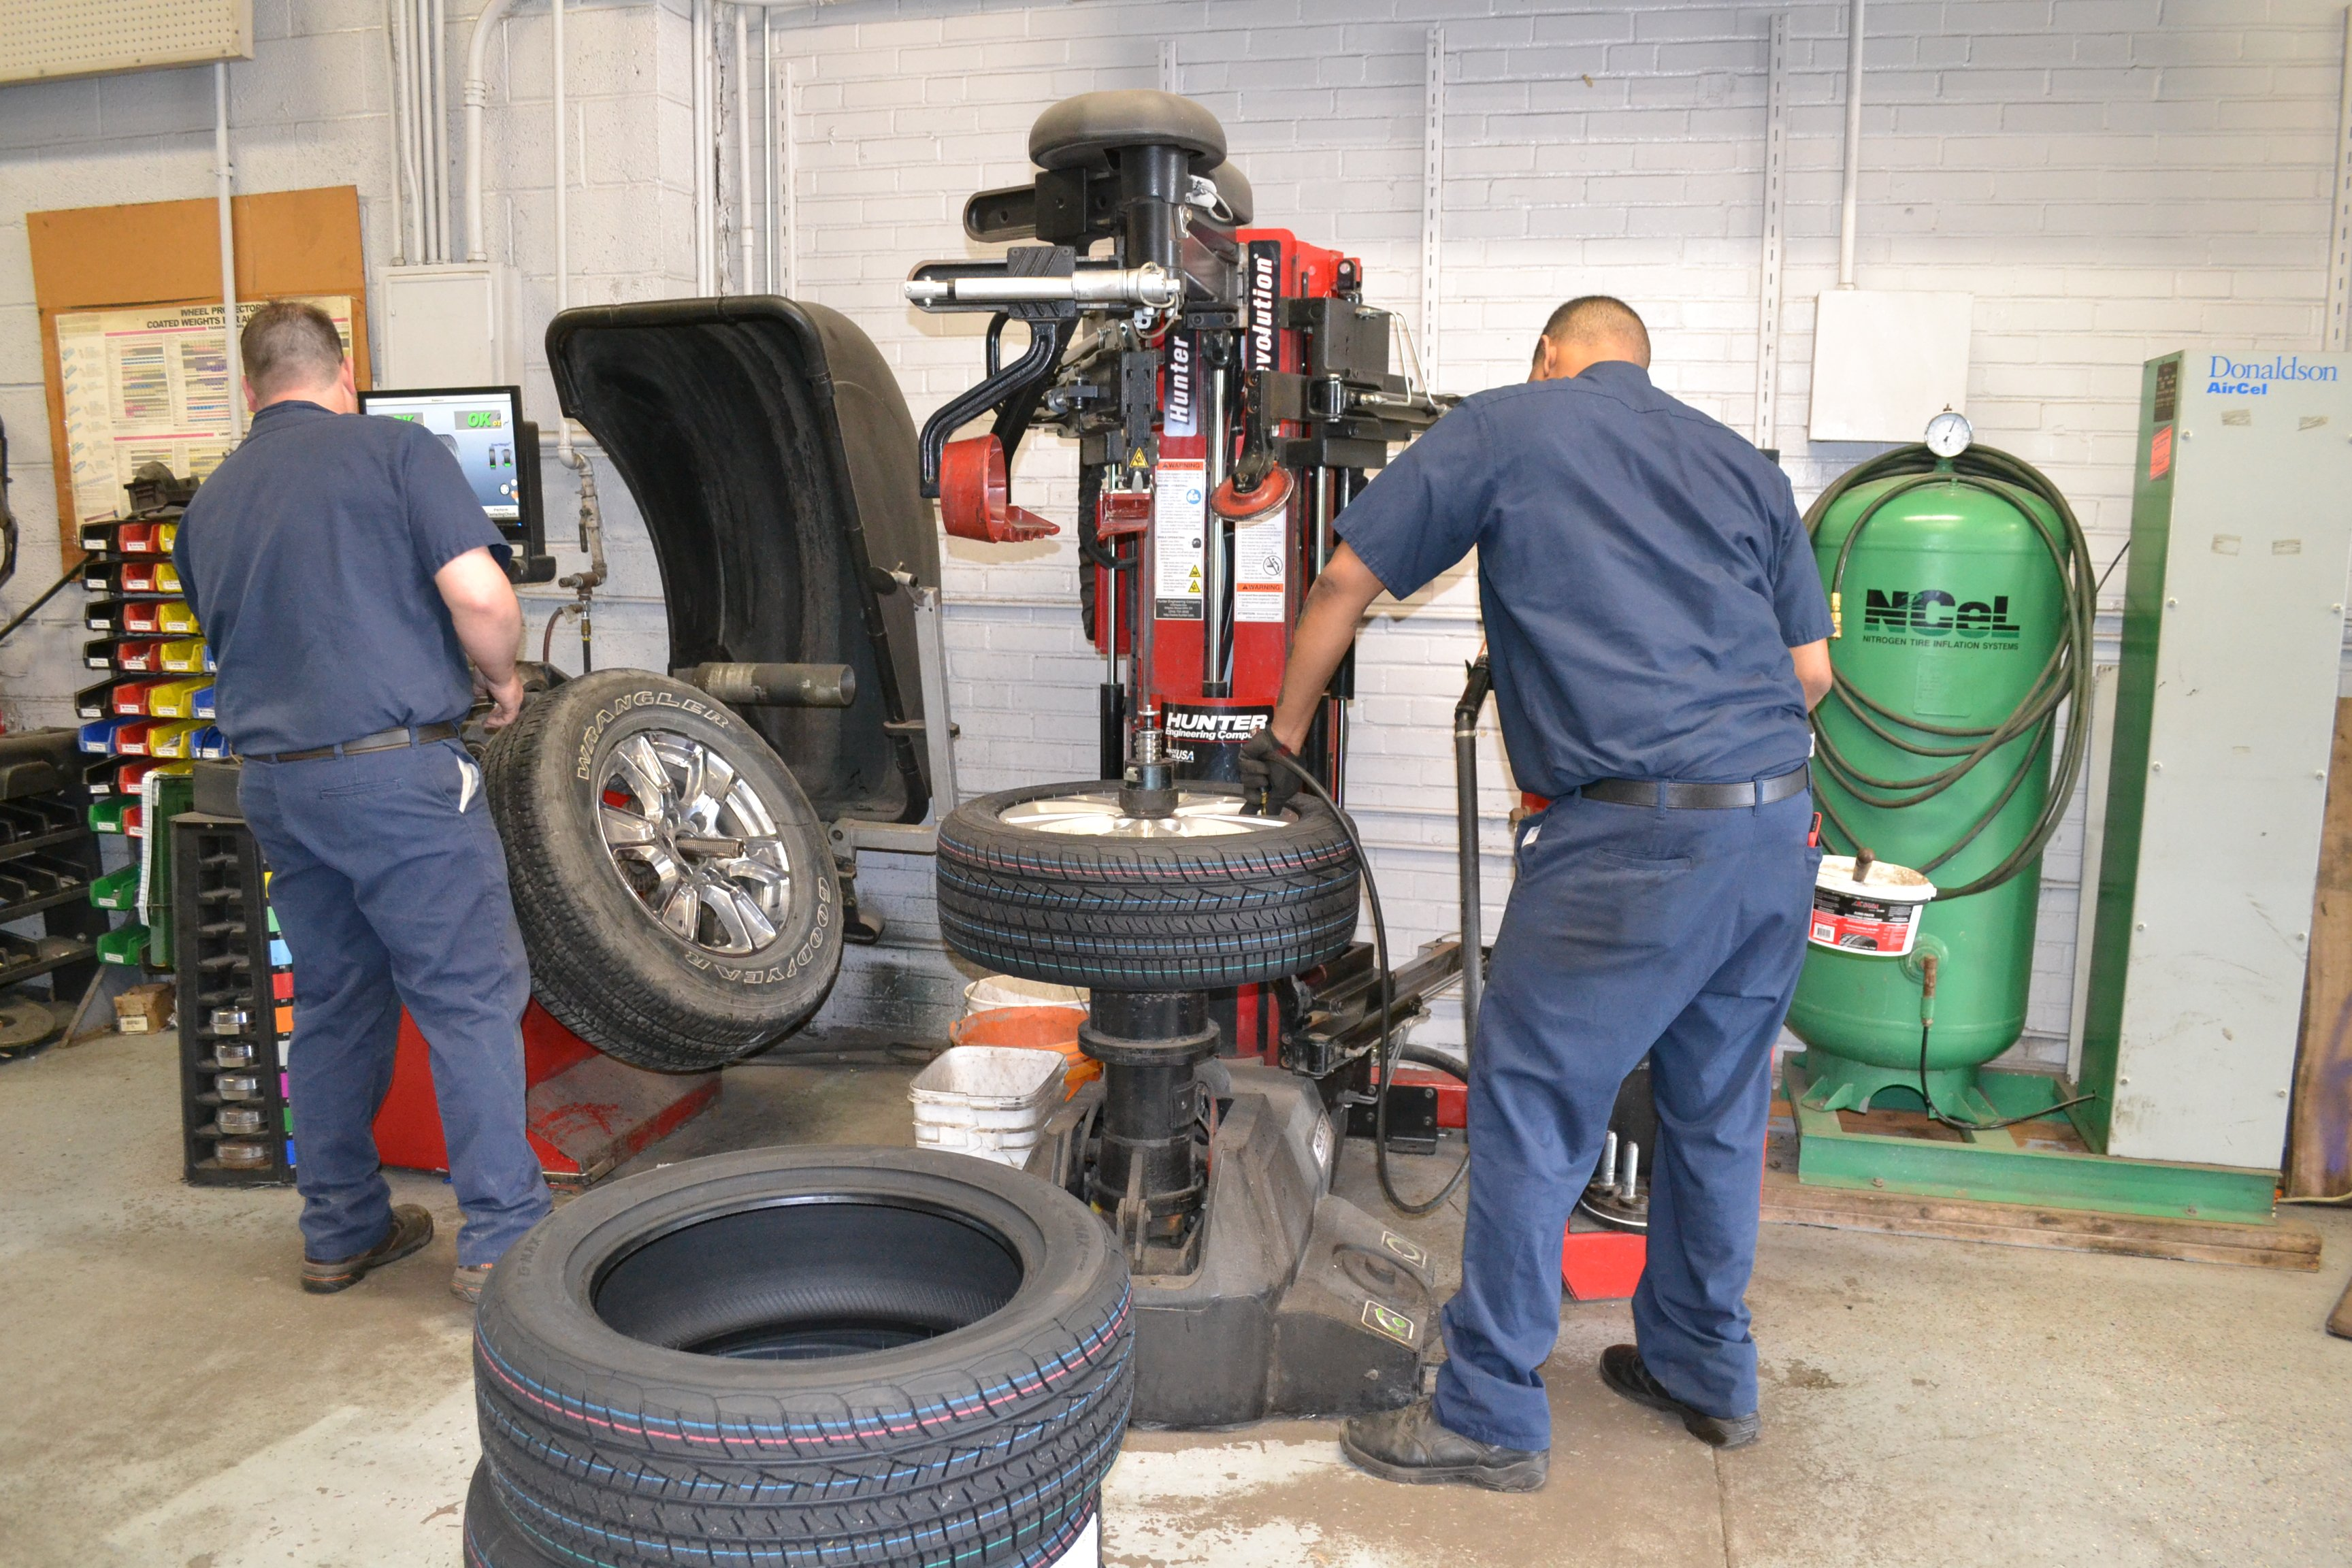 Feds Classify Auto Repair Facilities As 'Essential' During COVID-19